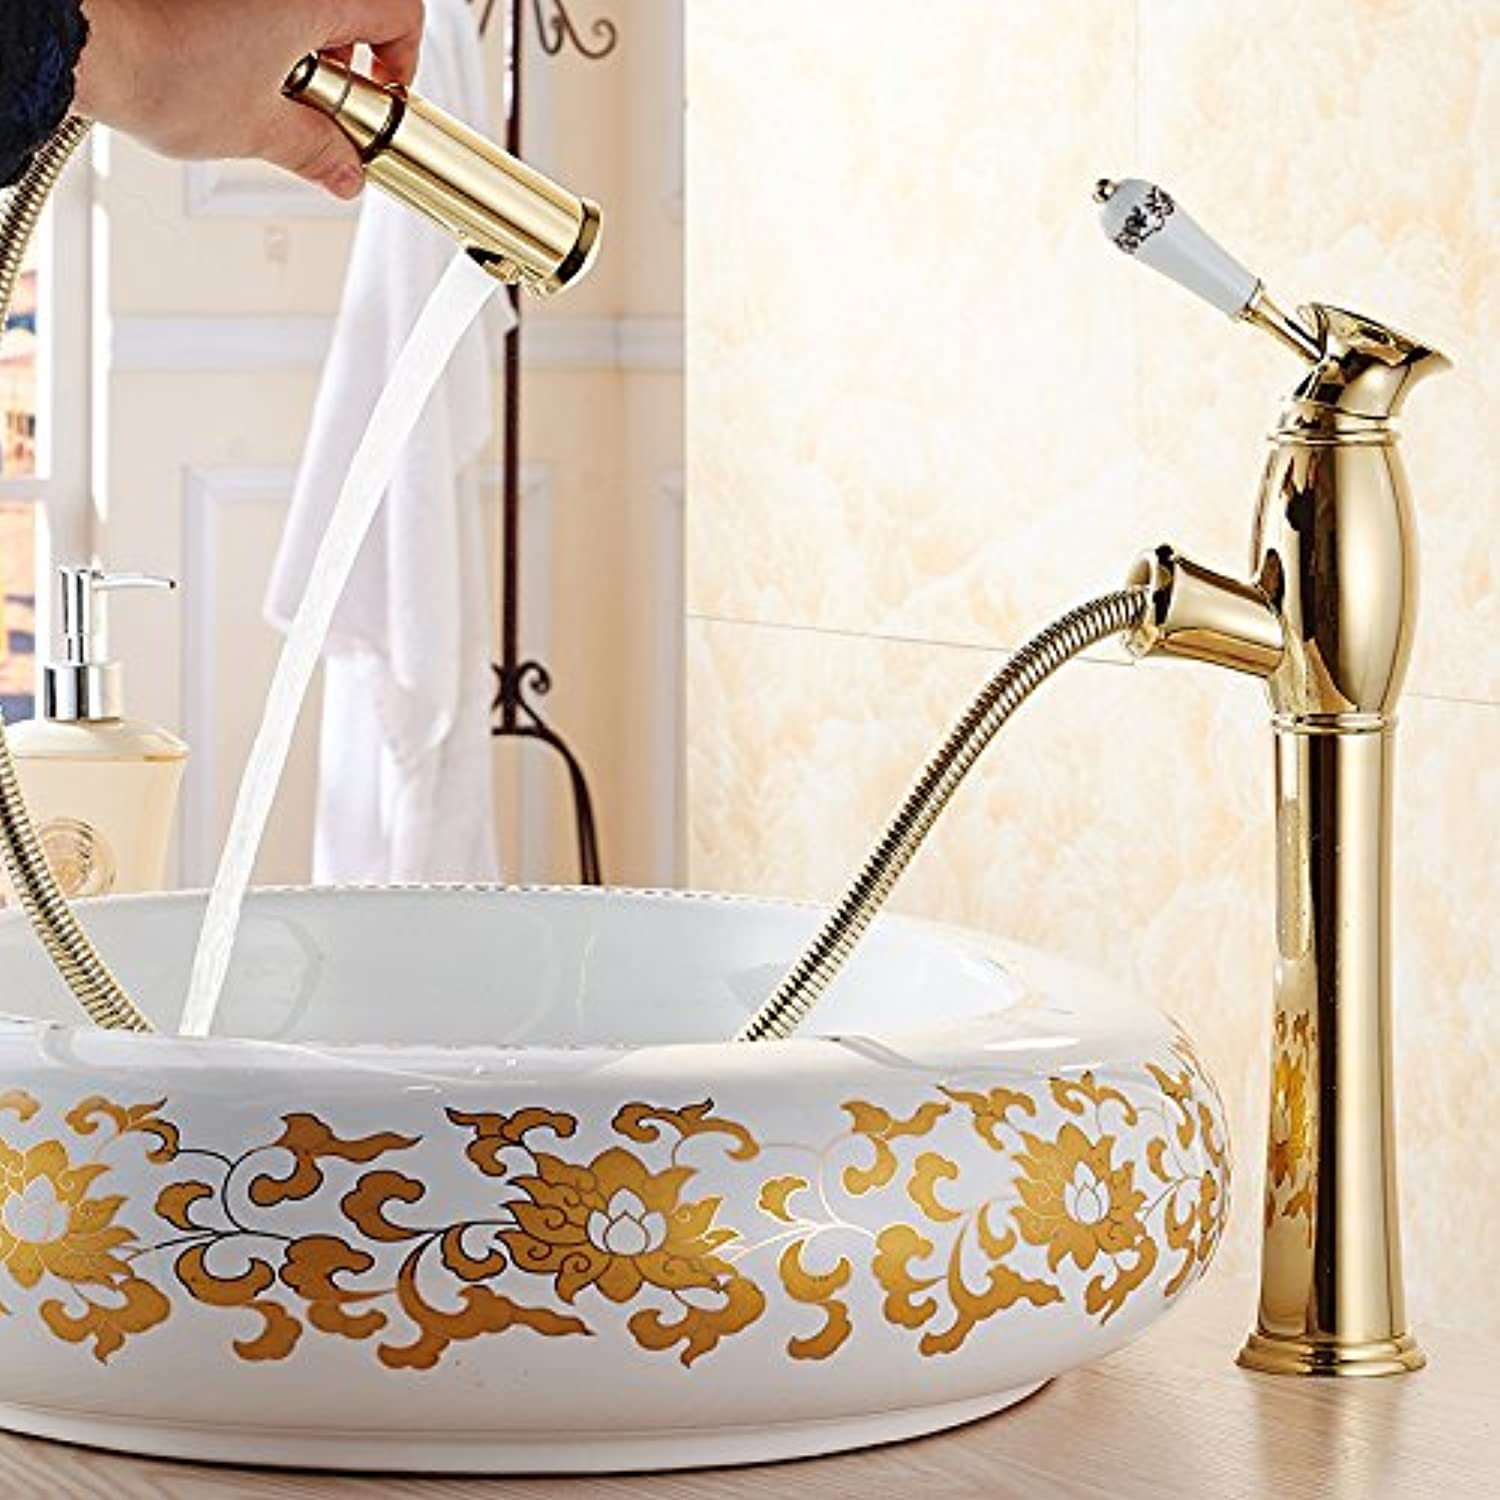 LHbox Basin Mixer Tap Bathroom Sink Faucet Europe Ya poetry pull continental basin faucet full-scale copper cold water wash-basin sink tap on the lower leg Antique colors, high pin gold